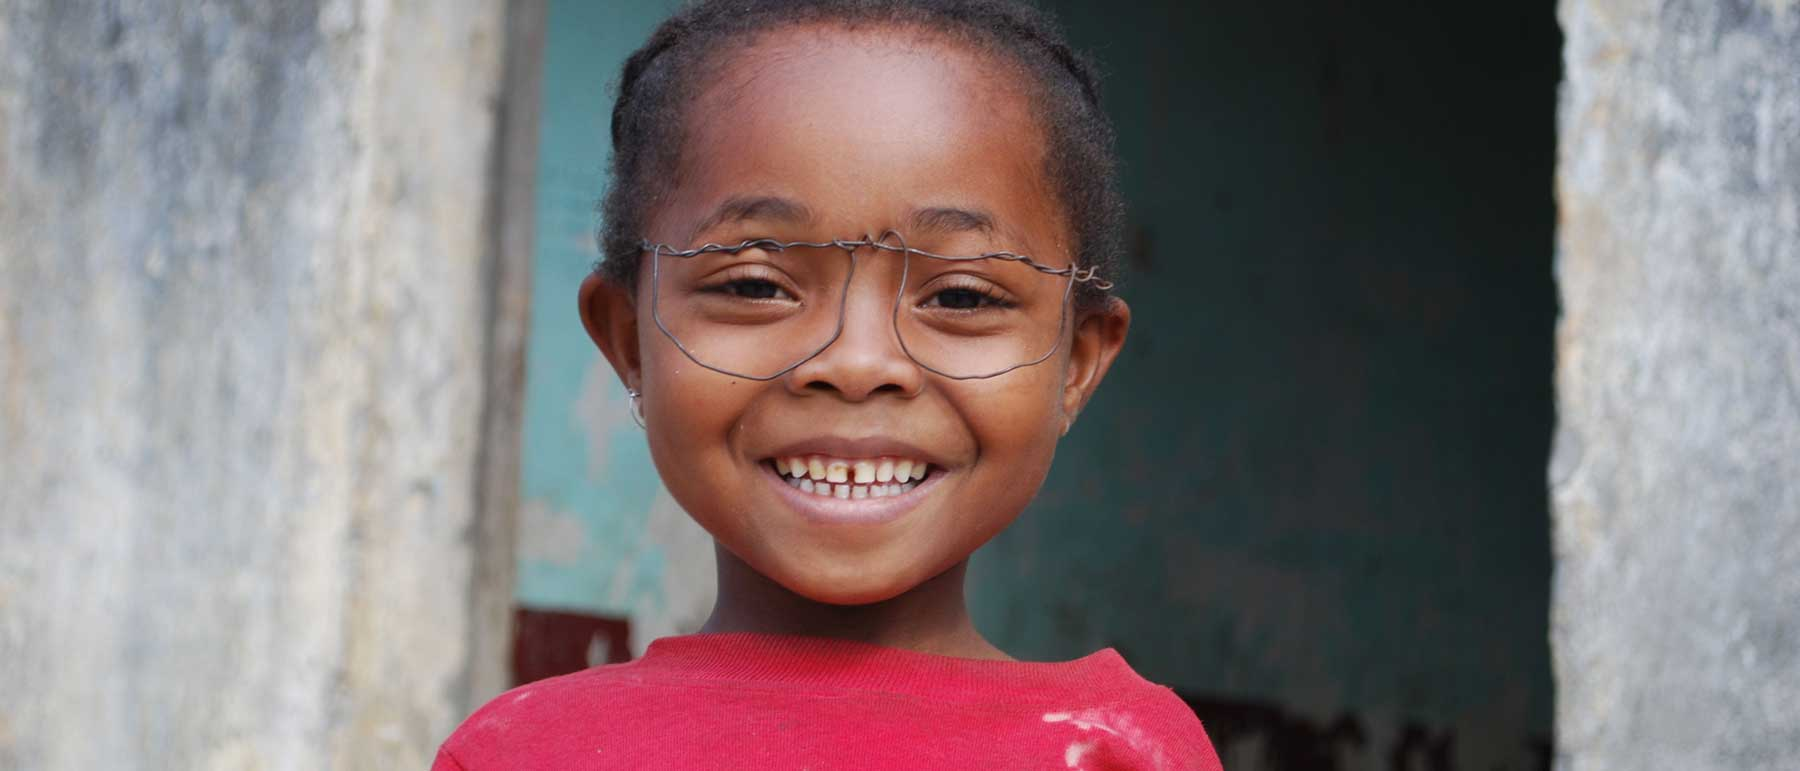 Happy child with glasses in southeast Madagascar